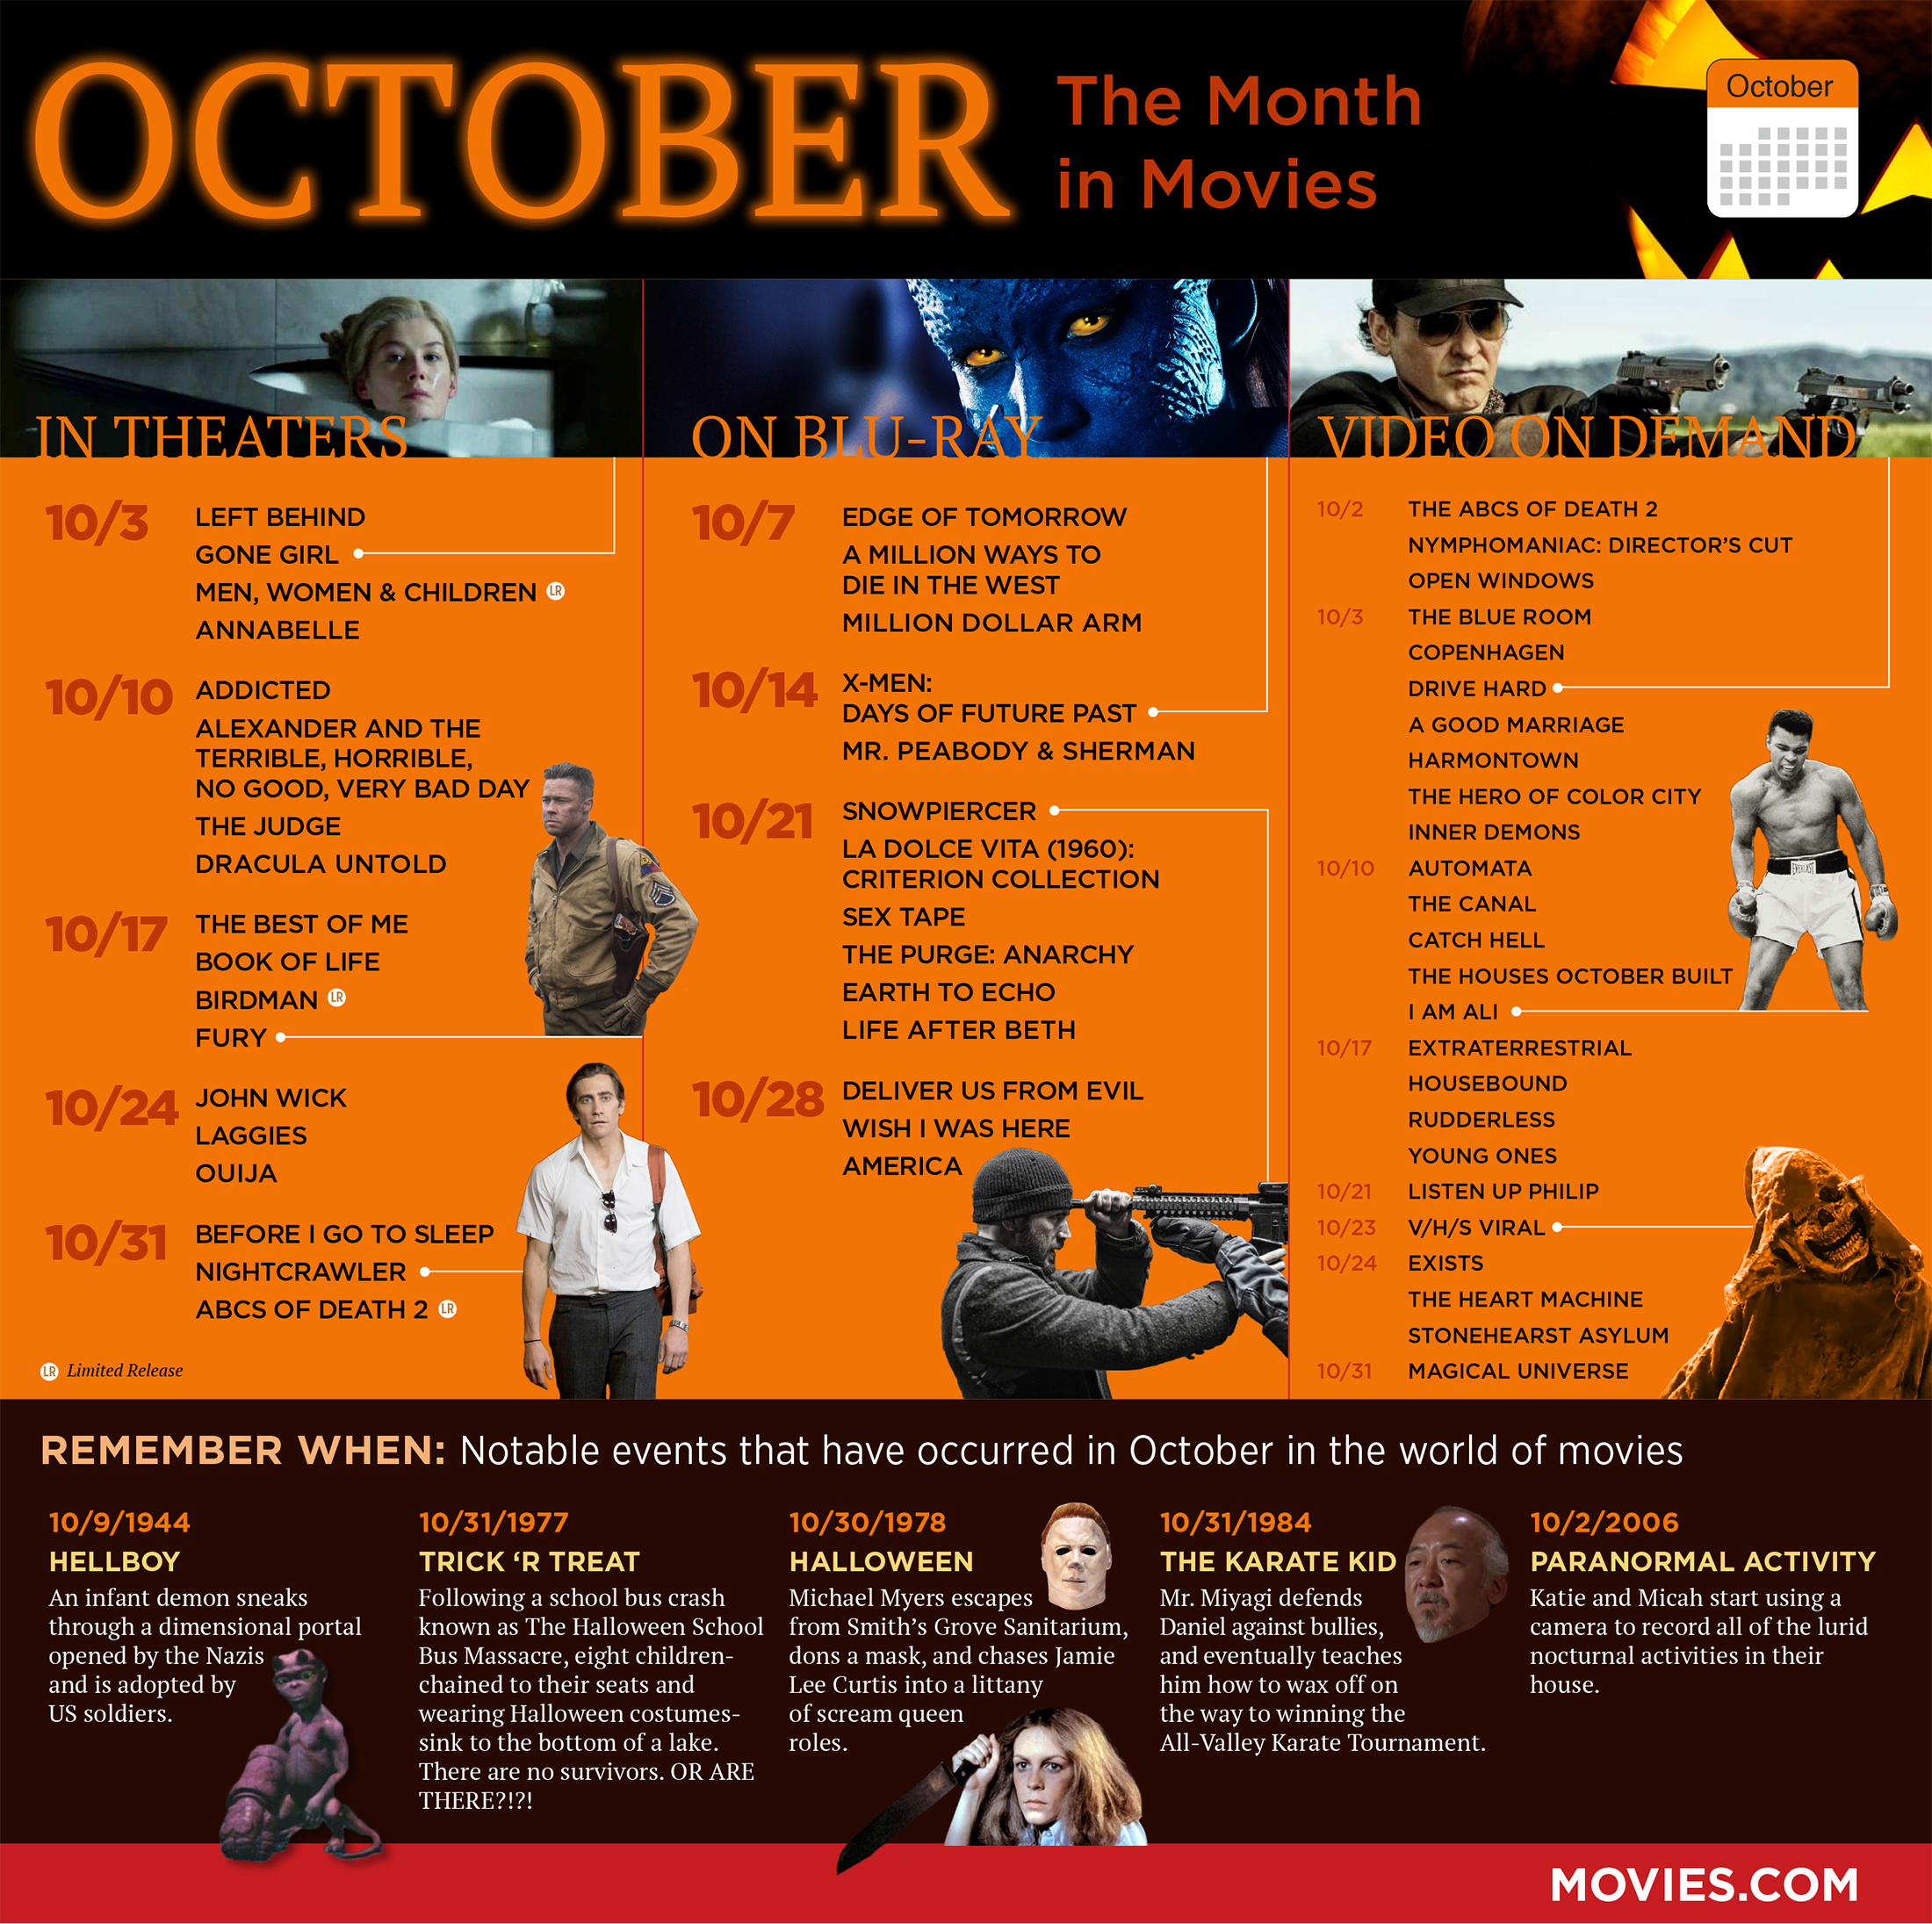 October Movies Calendar: In Theaters, on Blu-ray, New VOD Releases and More...